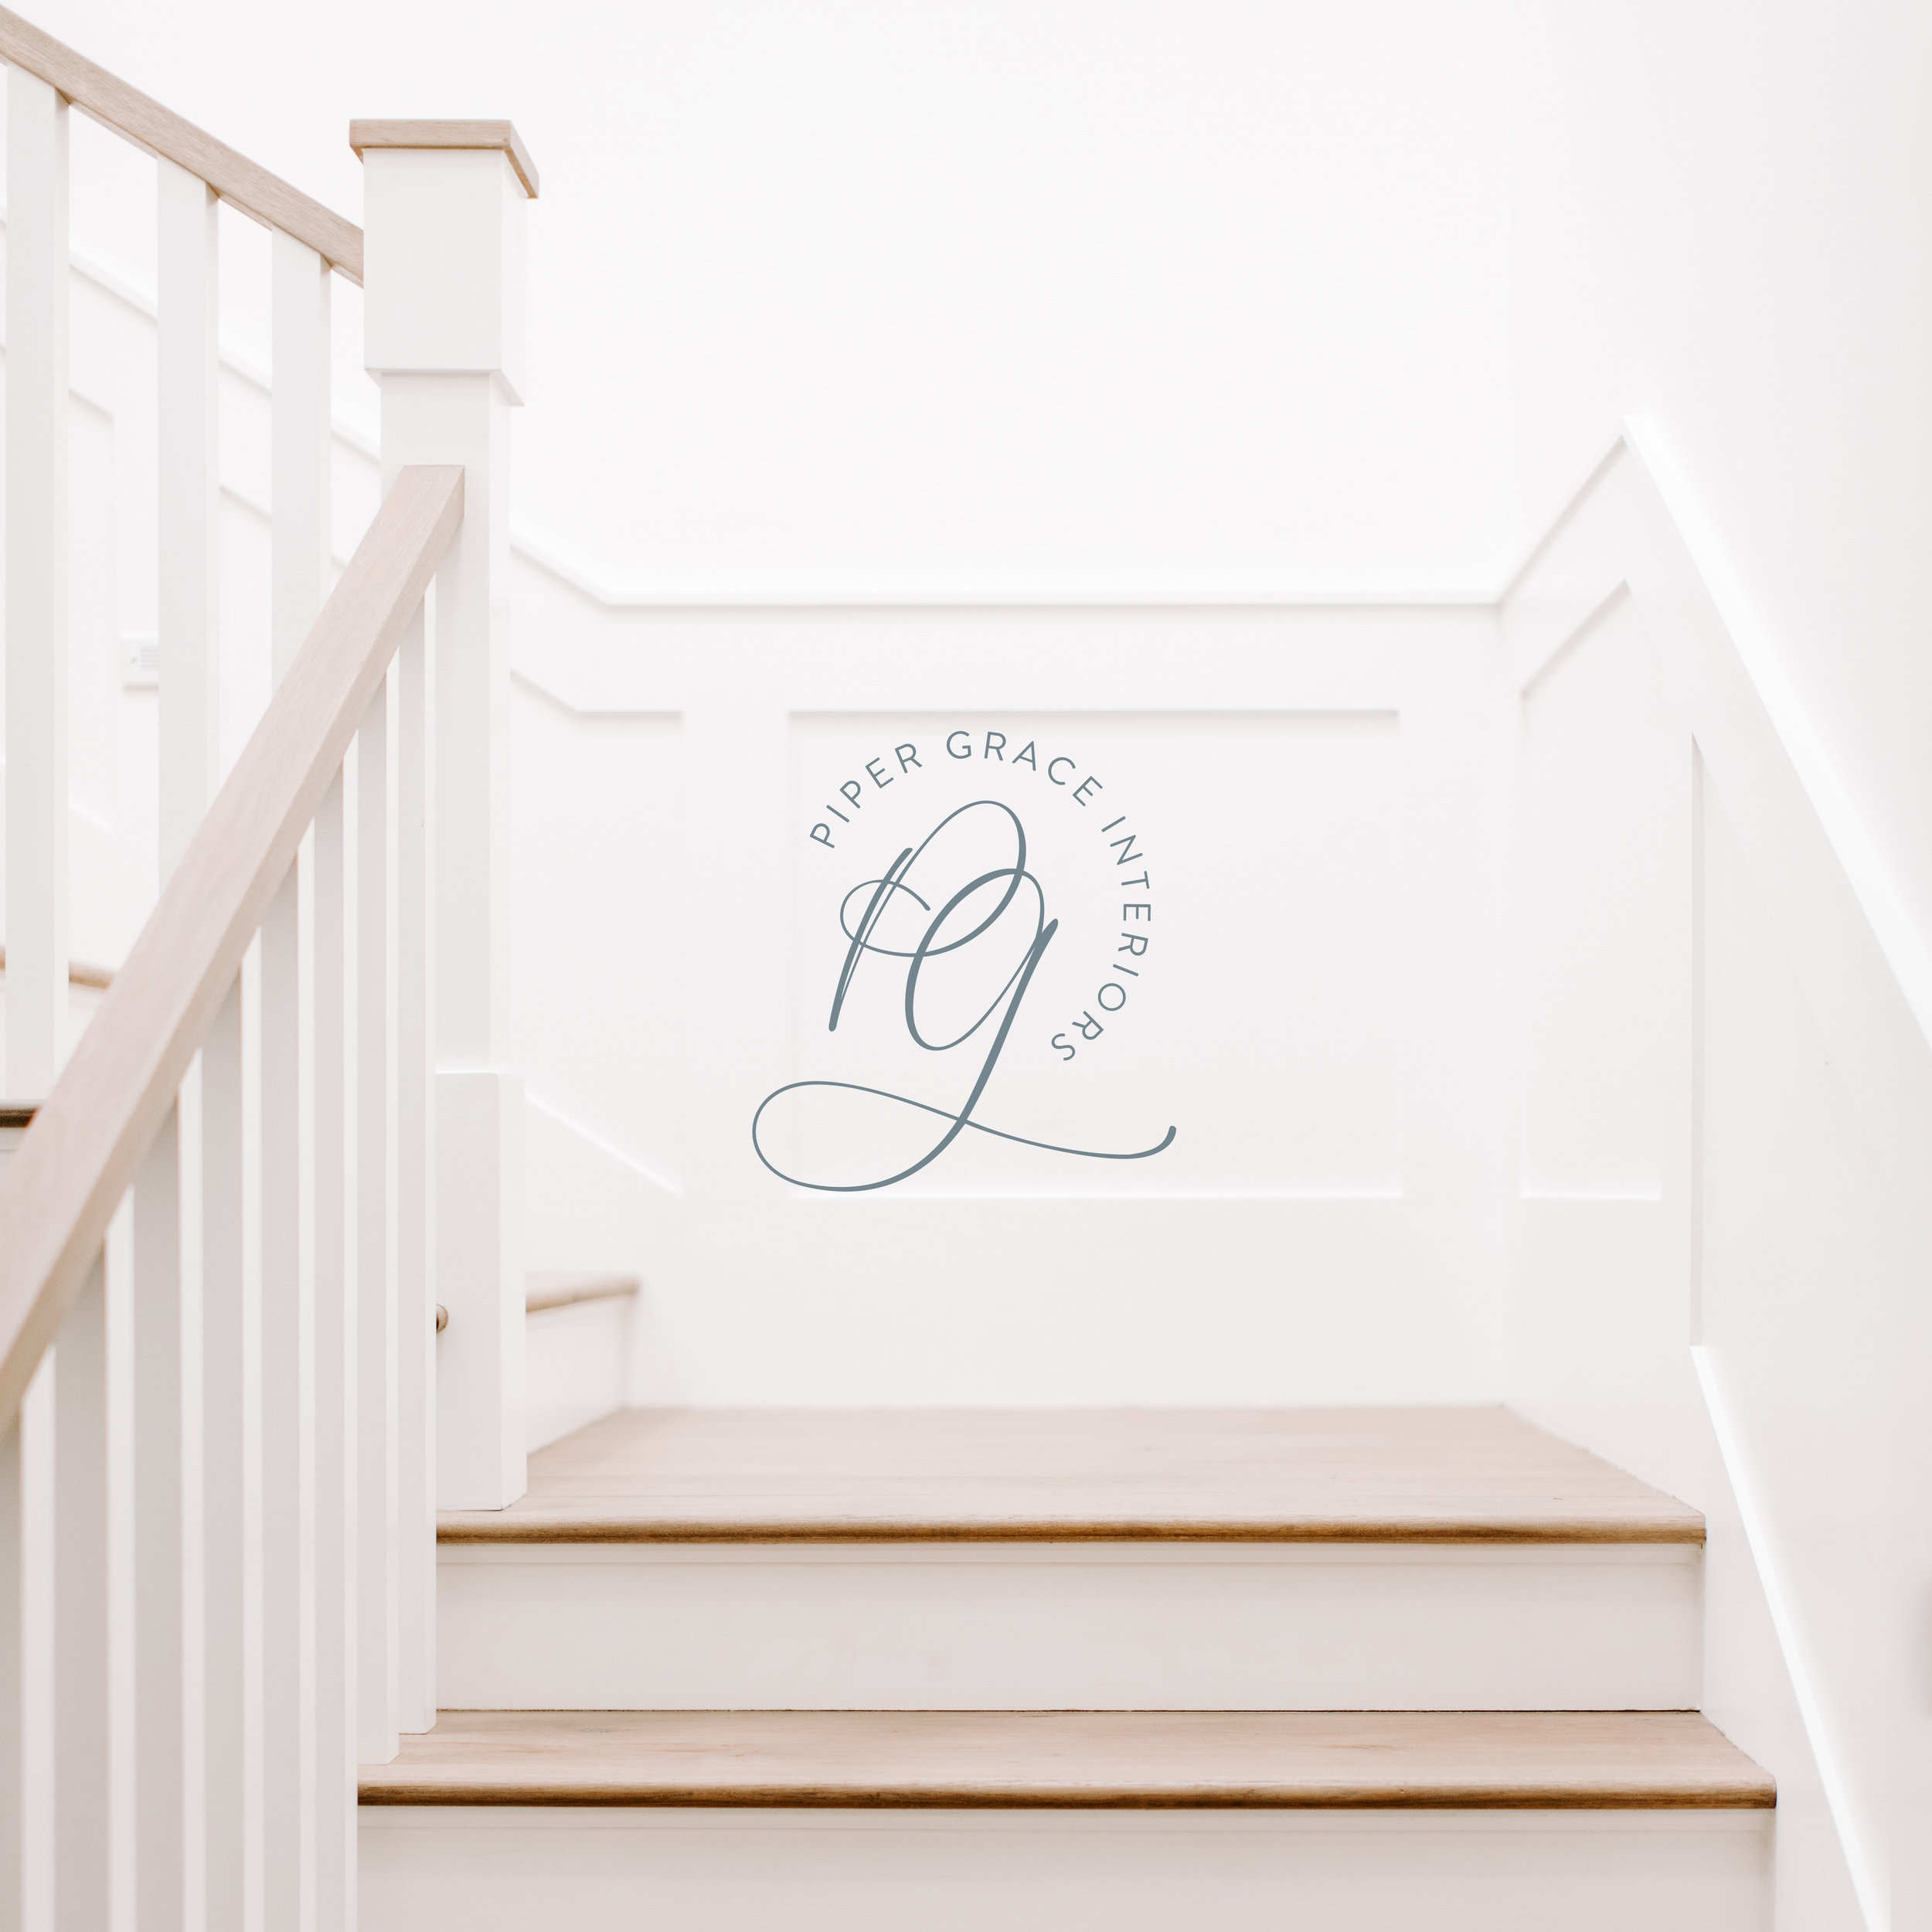 Piper Grace Interiors | Branding by Jula Paper Co.